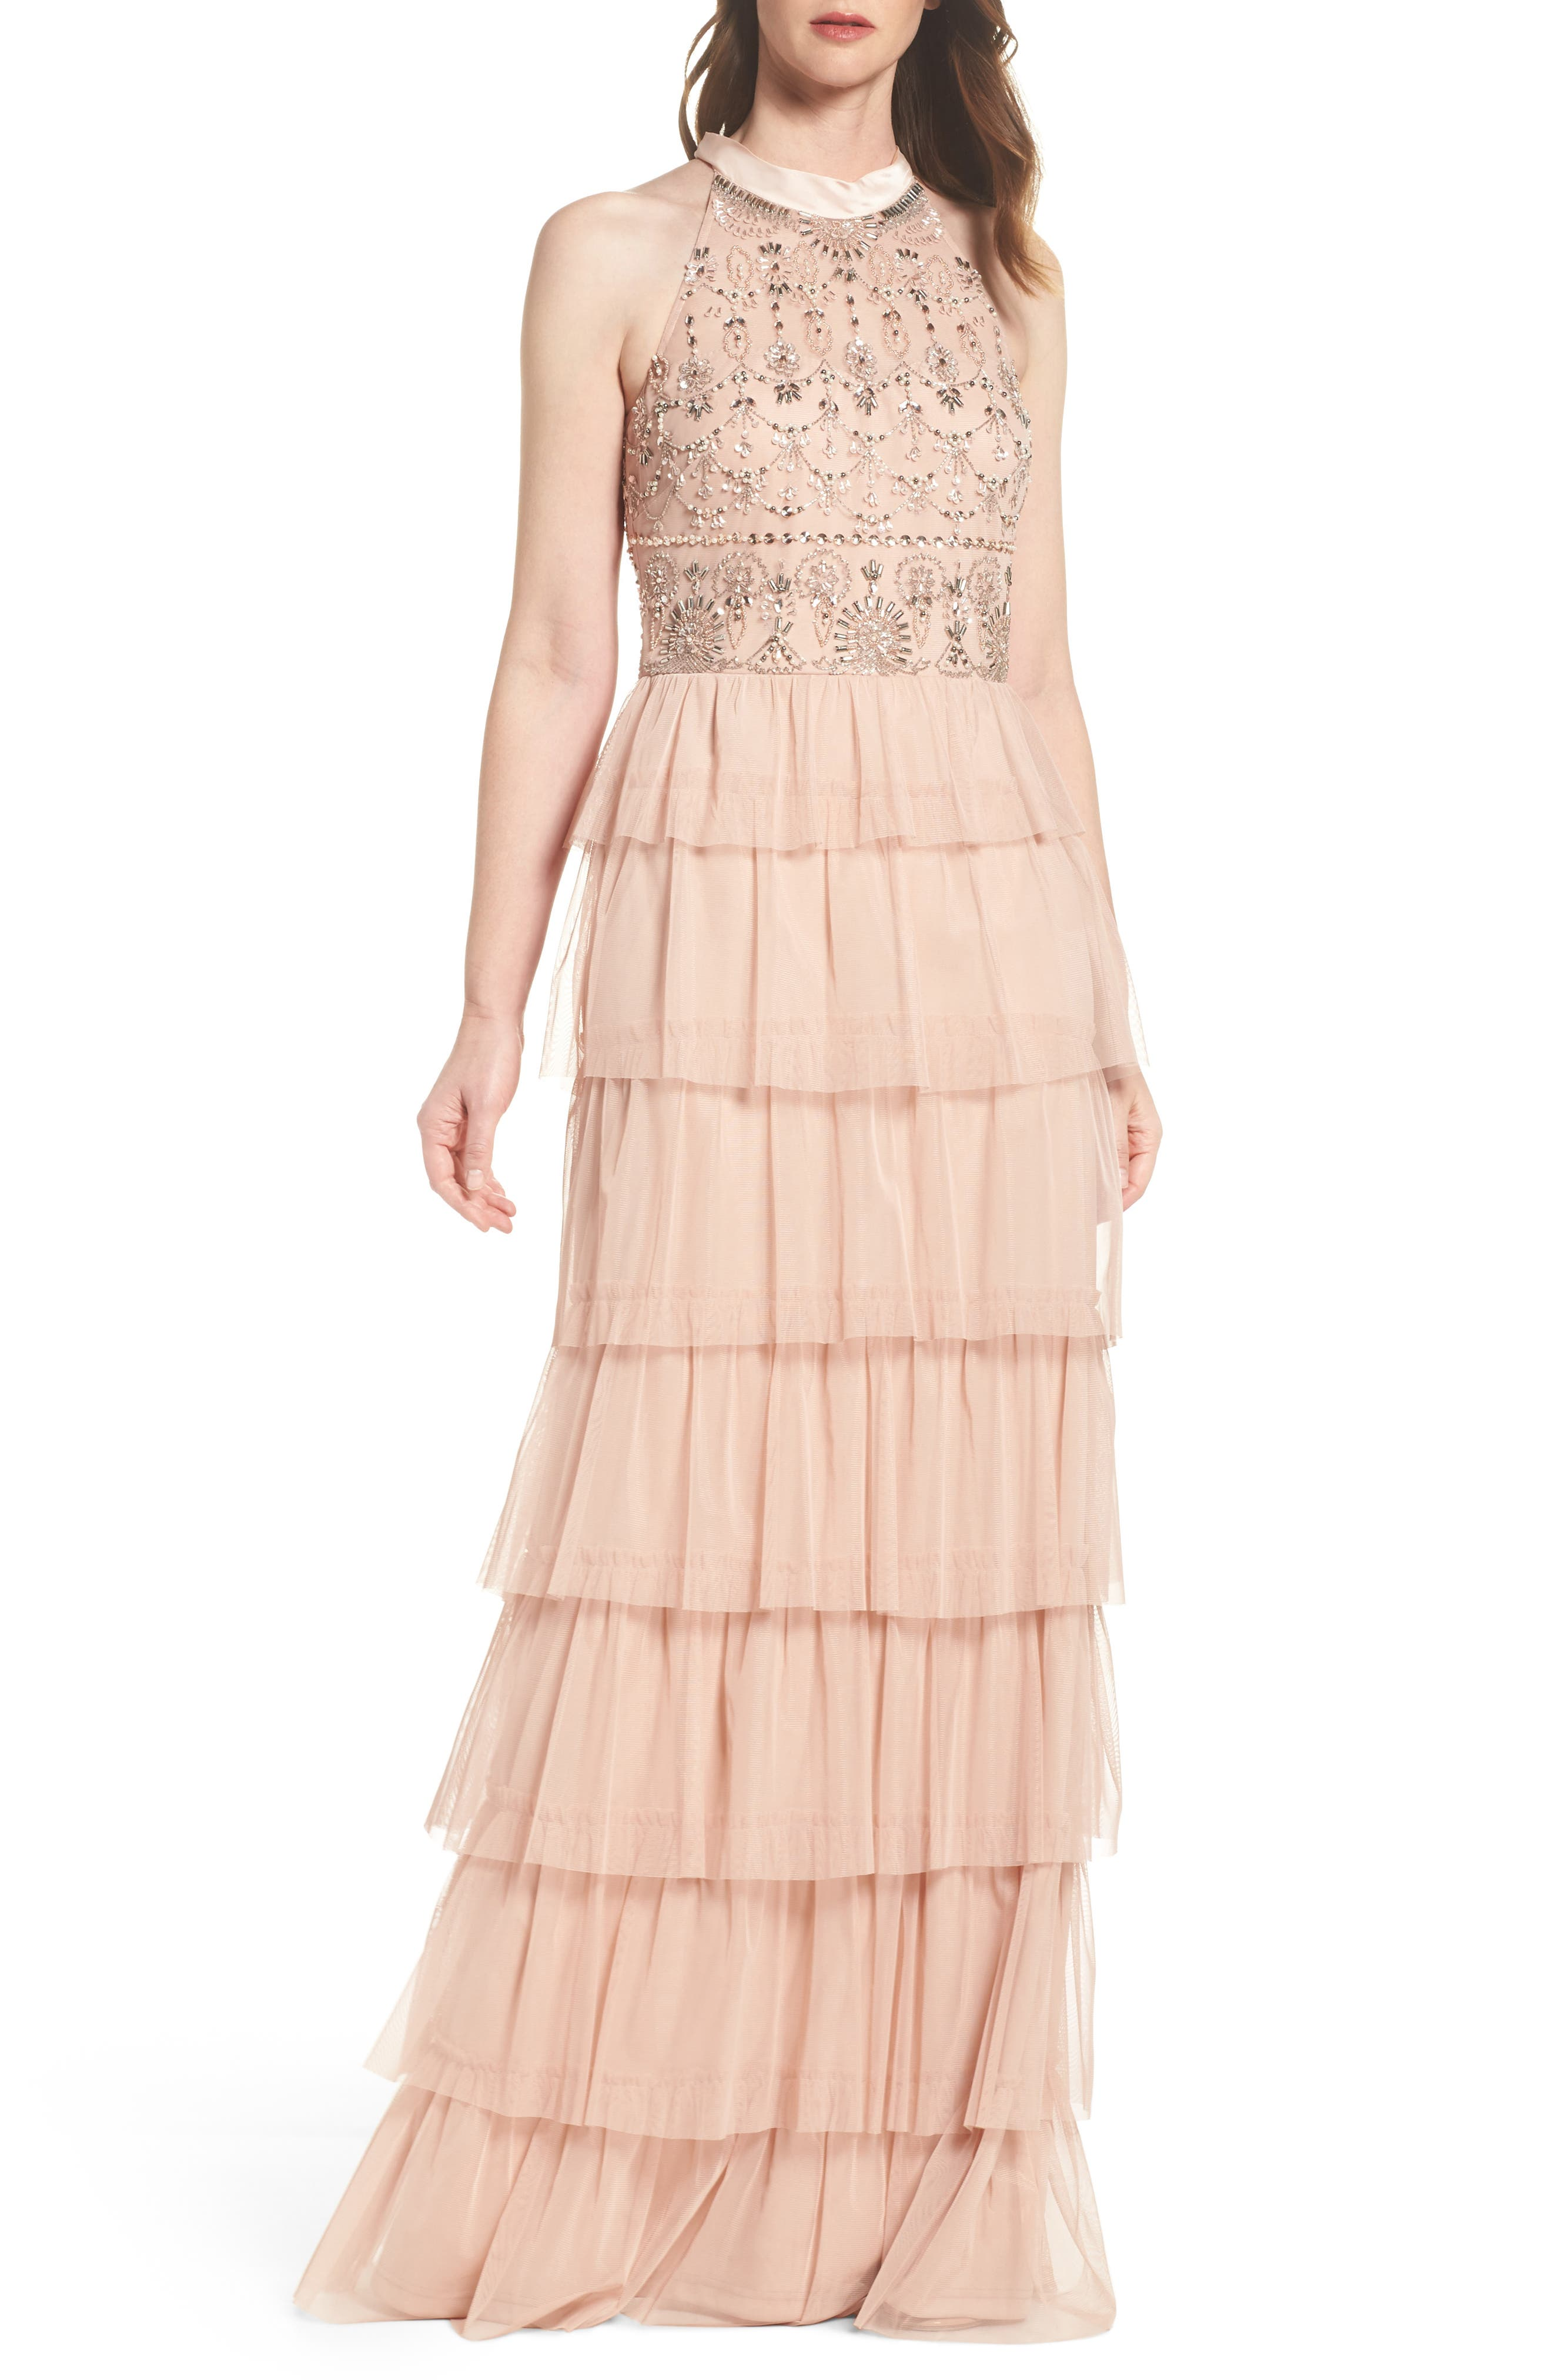 Main Image - Adrianna Papell Embellished Tiered Maxi Dress